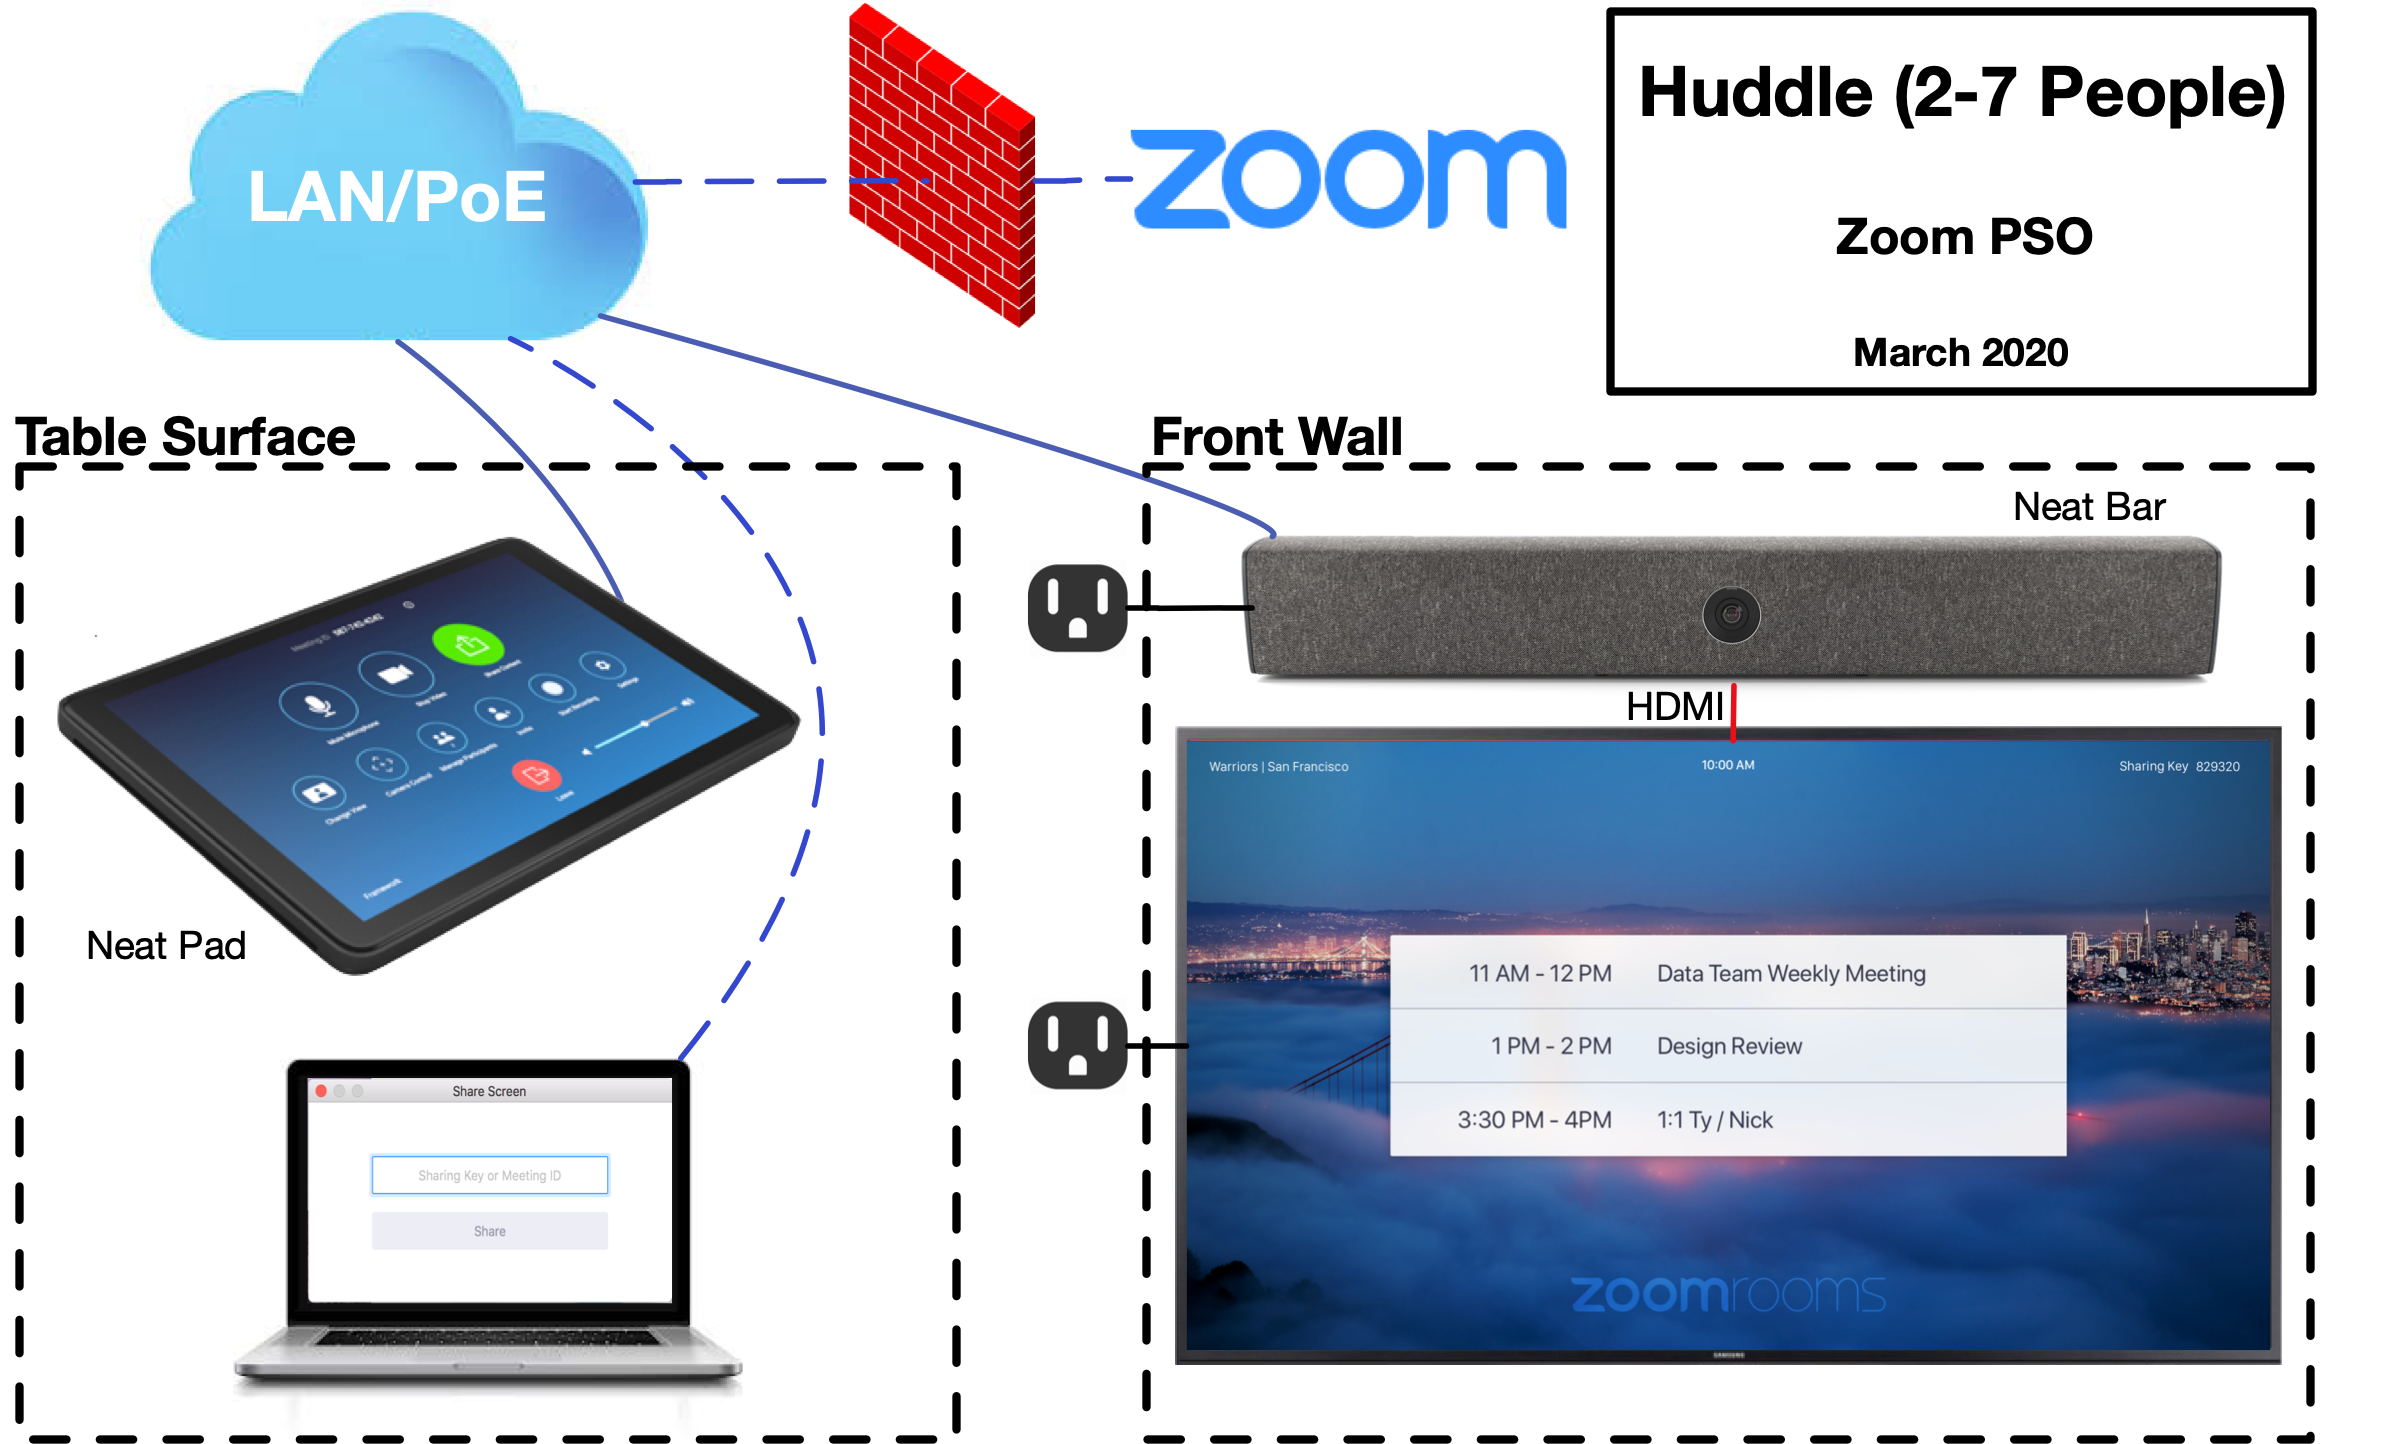 Pictorial_Schematic_-_Zoom_Rooms_Huddle__2-7_People_.png